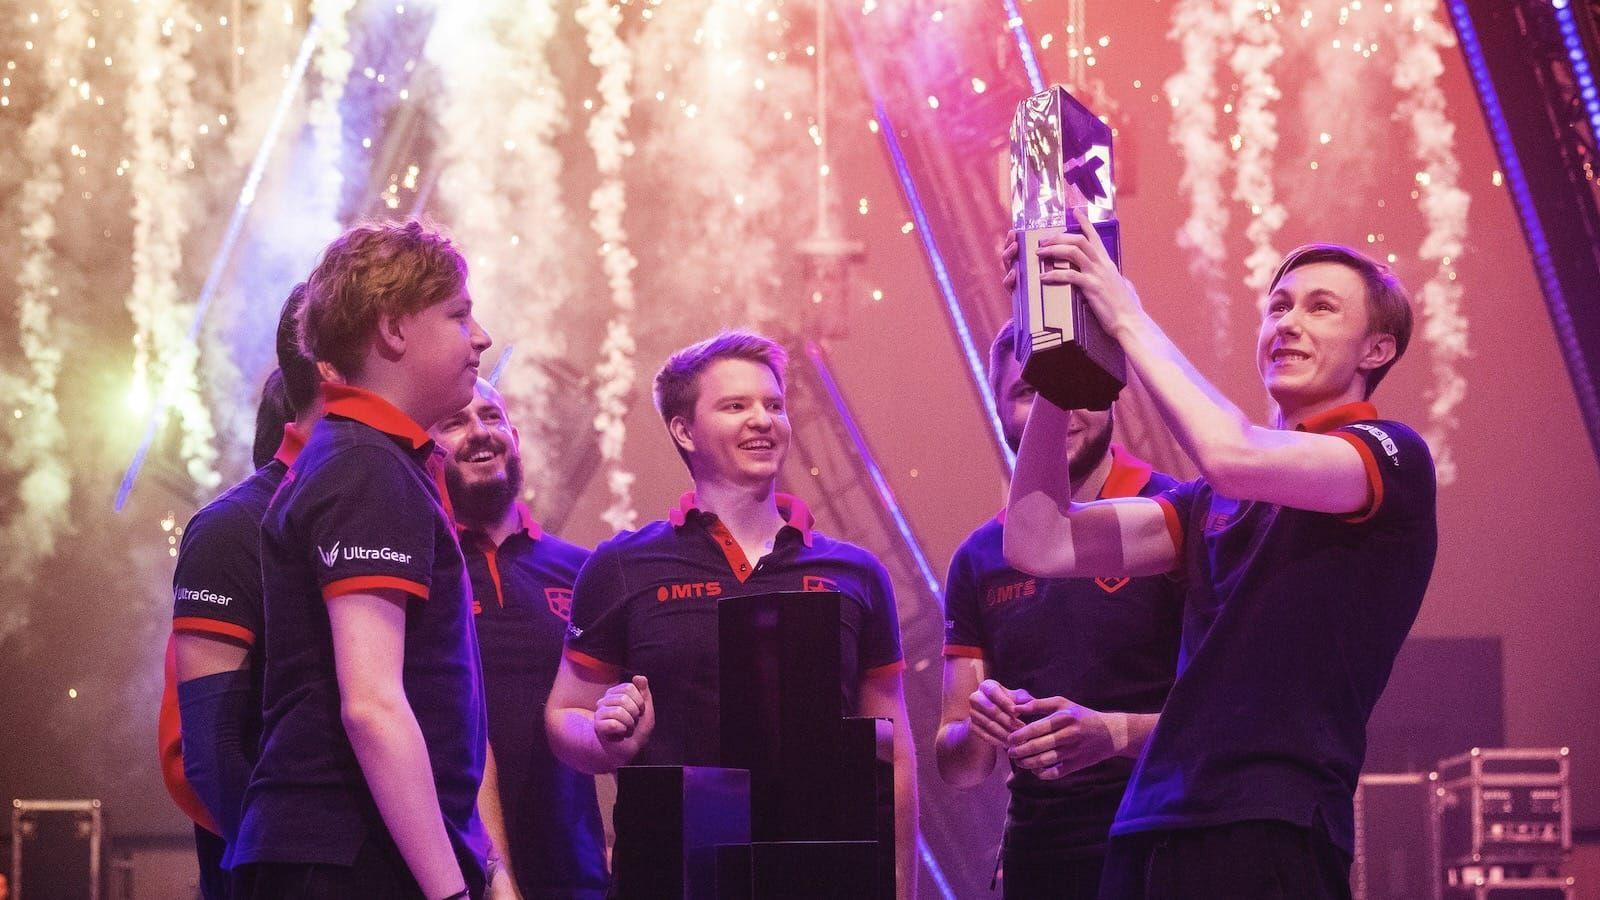 Gambit Esports Valorant team lift Masters Berlin trophy with fireworks behind them